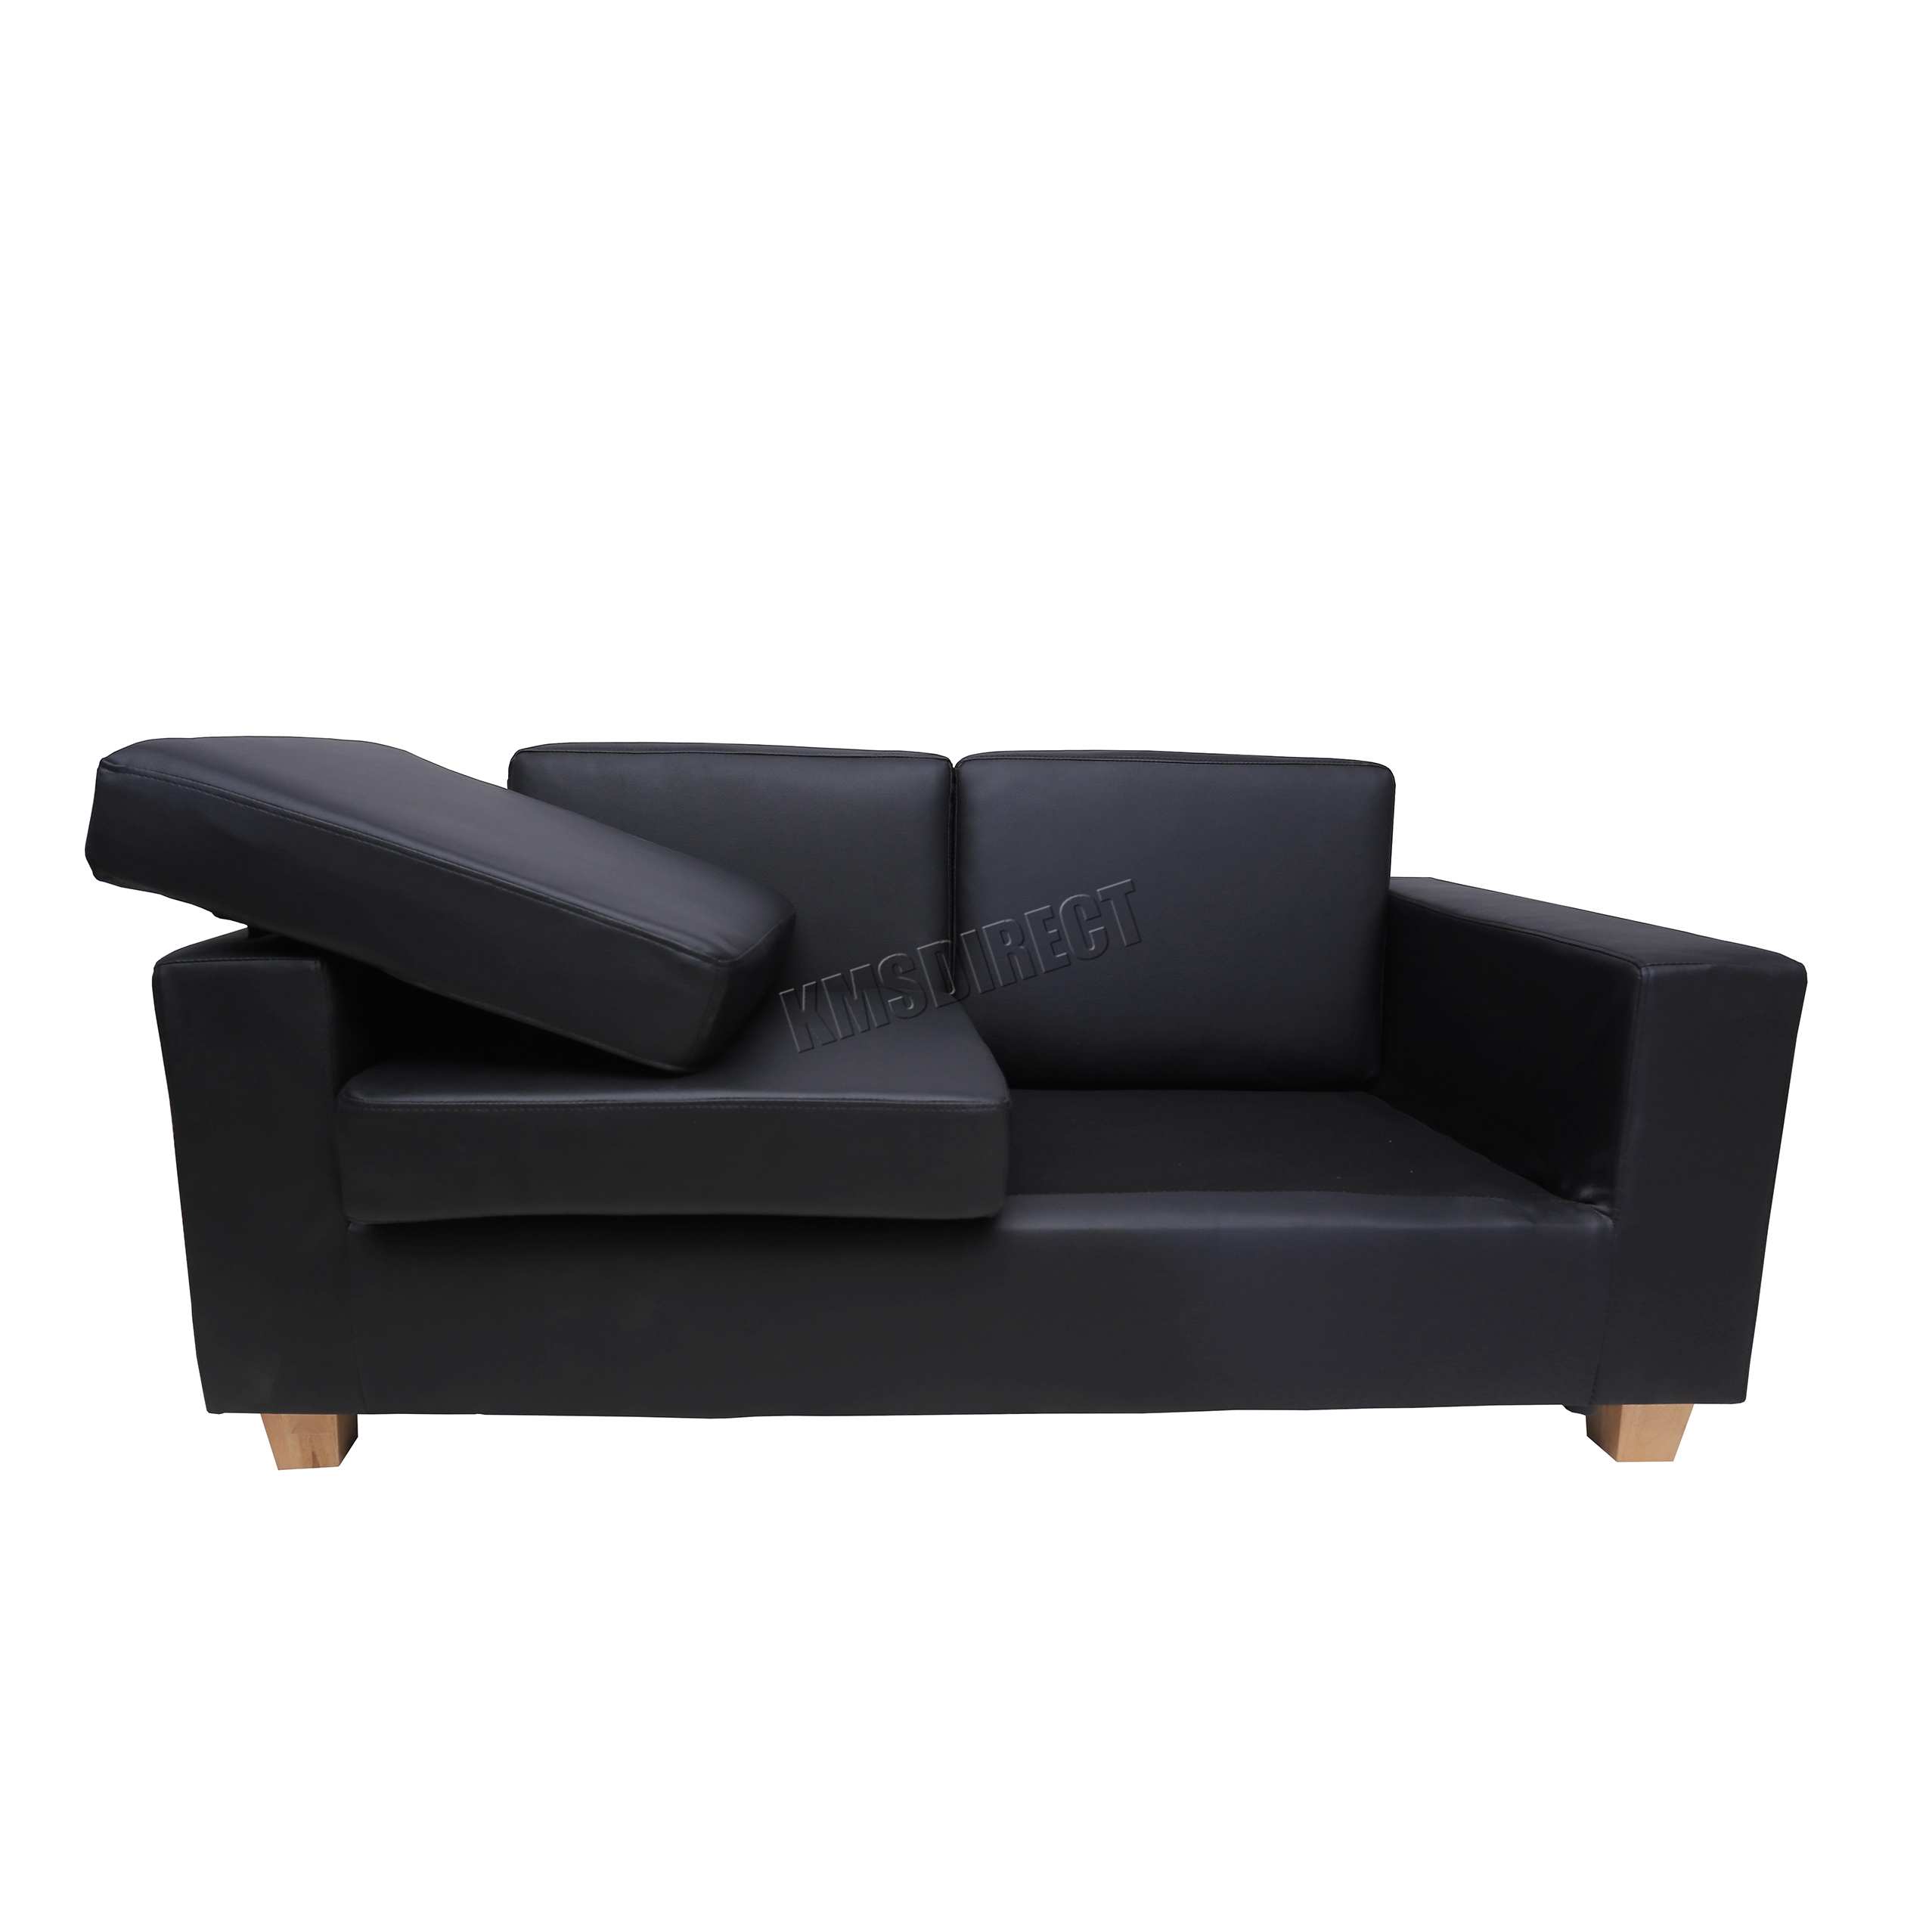 Foxhunter Pu 2 Seater Sofa Couch Livingroom Lounge